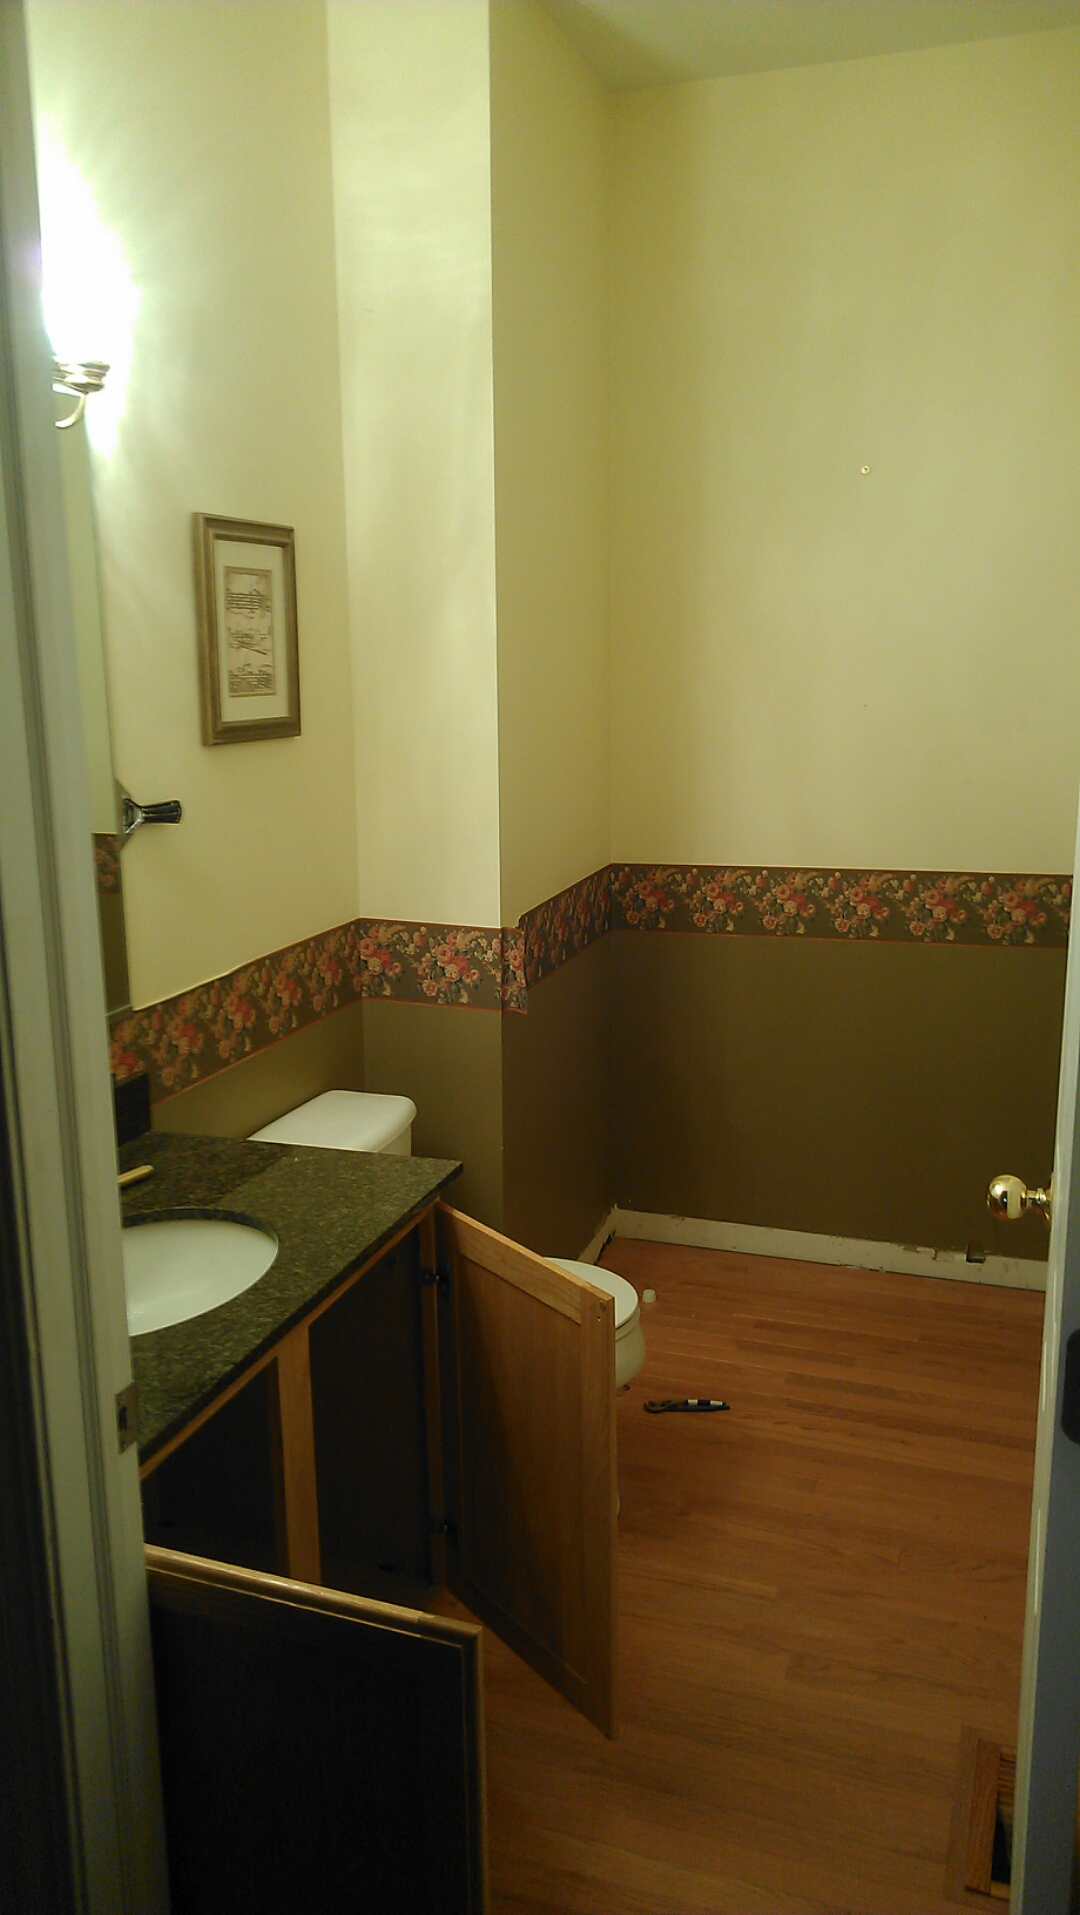 ADA-Compliant Accessible Bathroom Remodel in Geneva, IL - JW Construction and Design Services